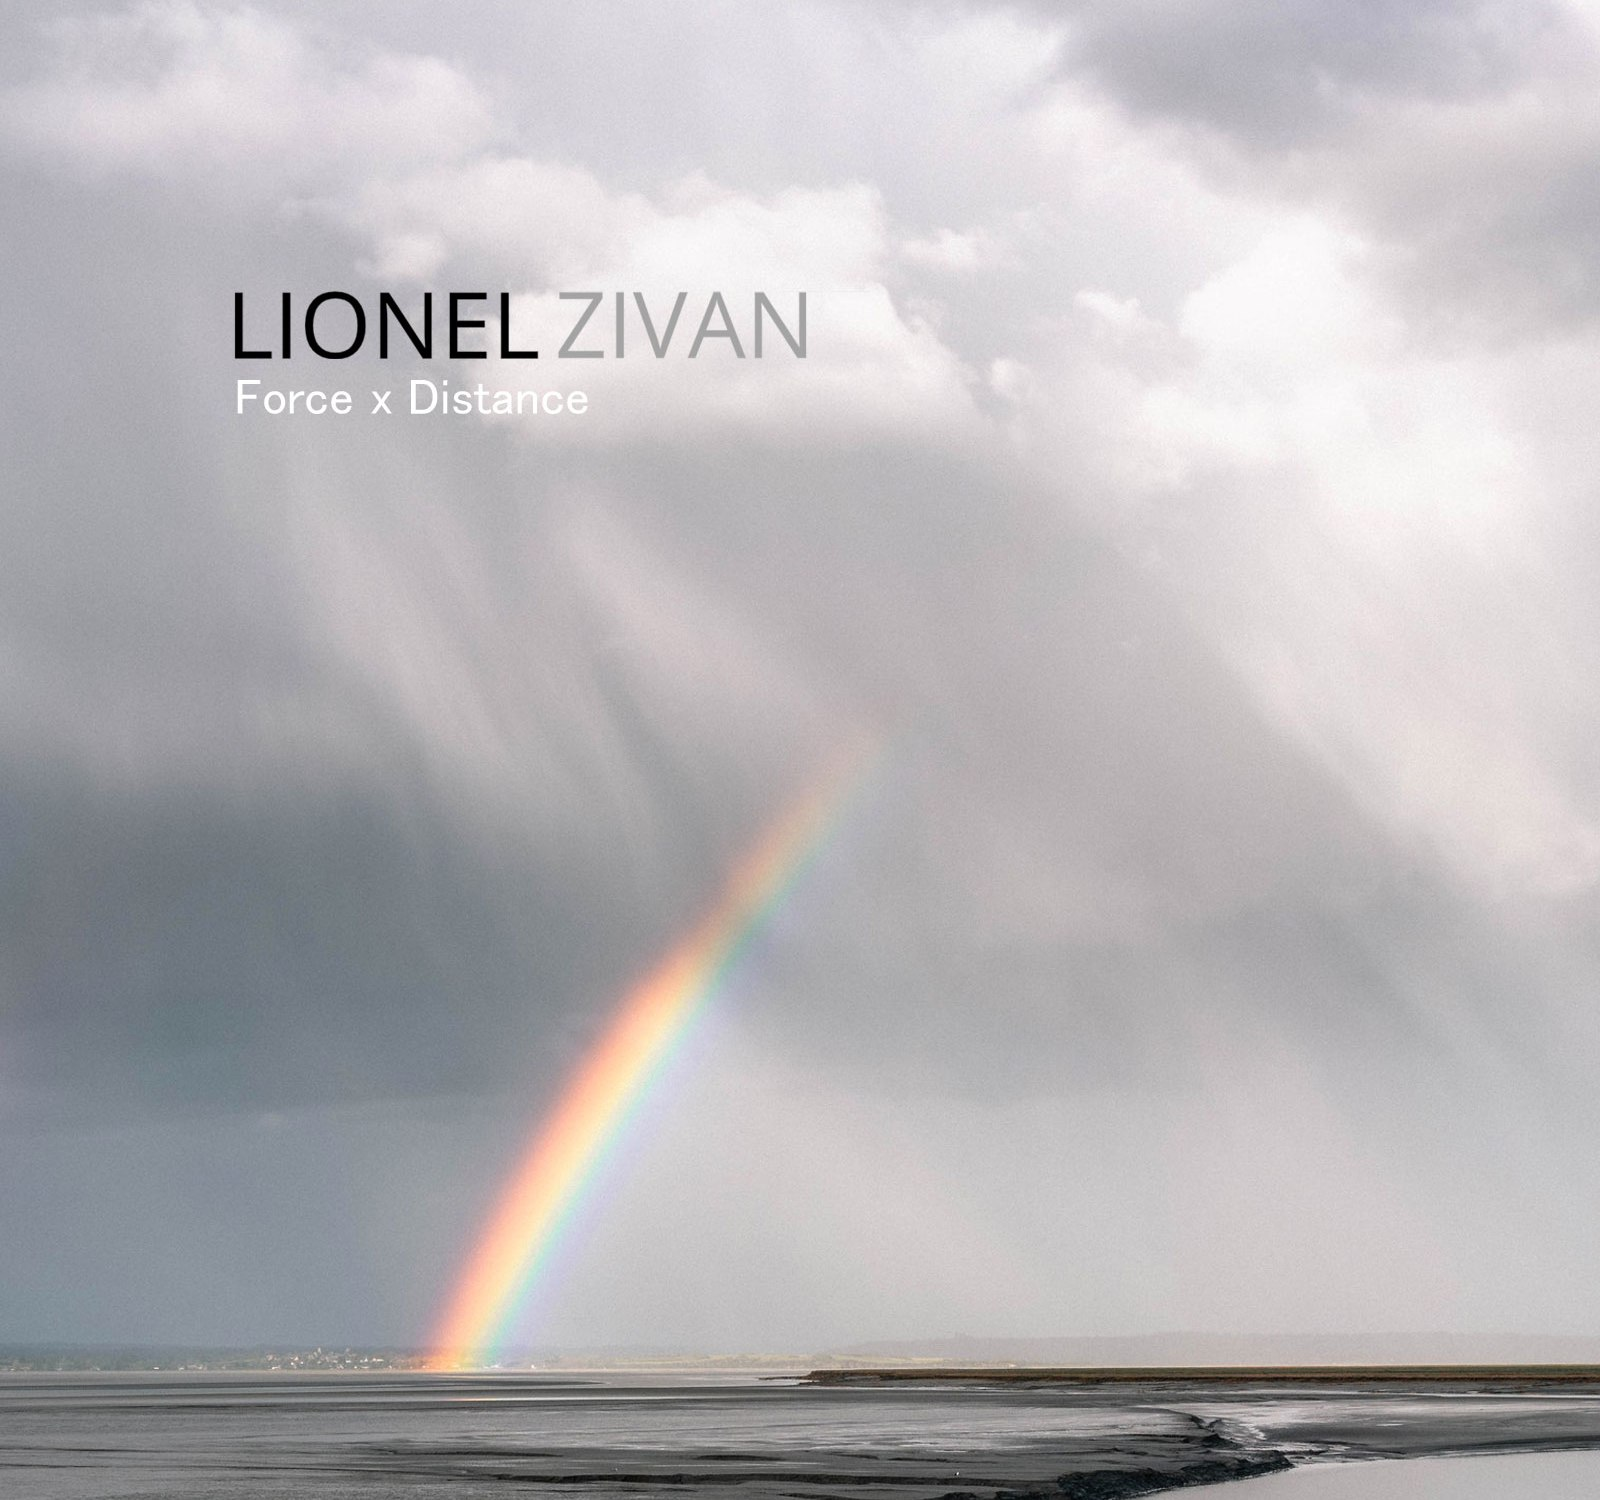 Lionel Zivan - Force x Distance album cover